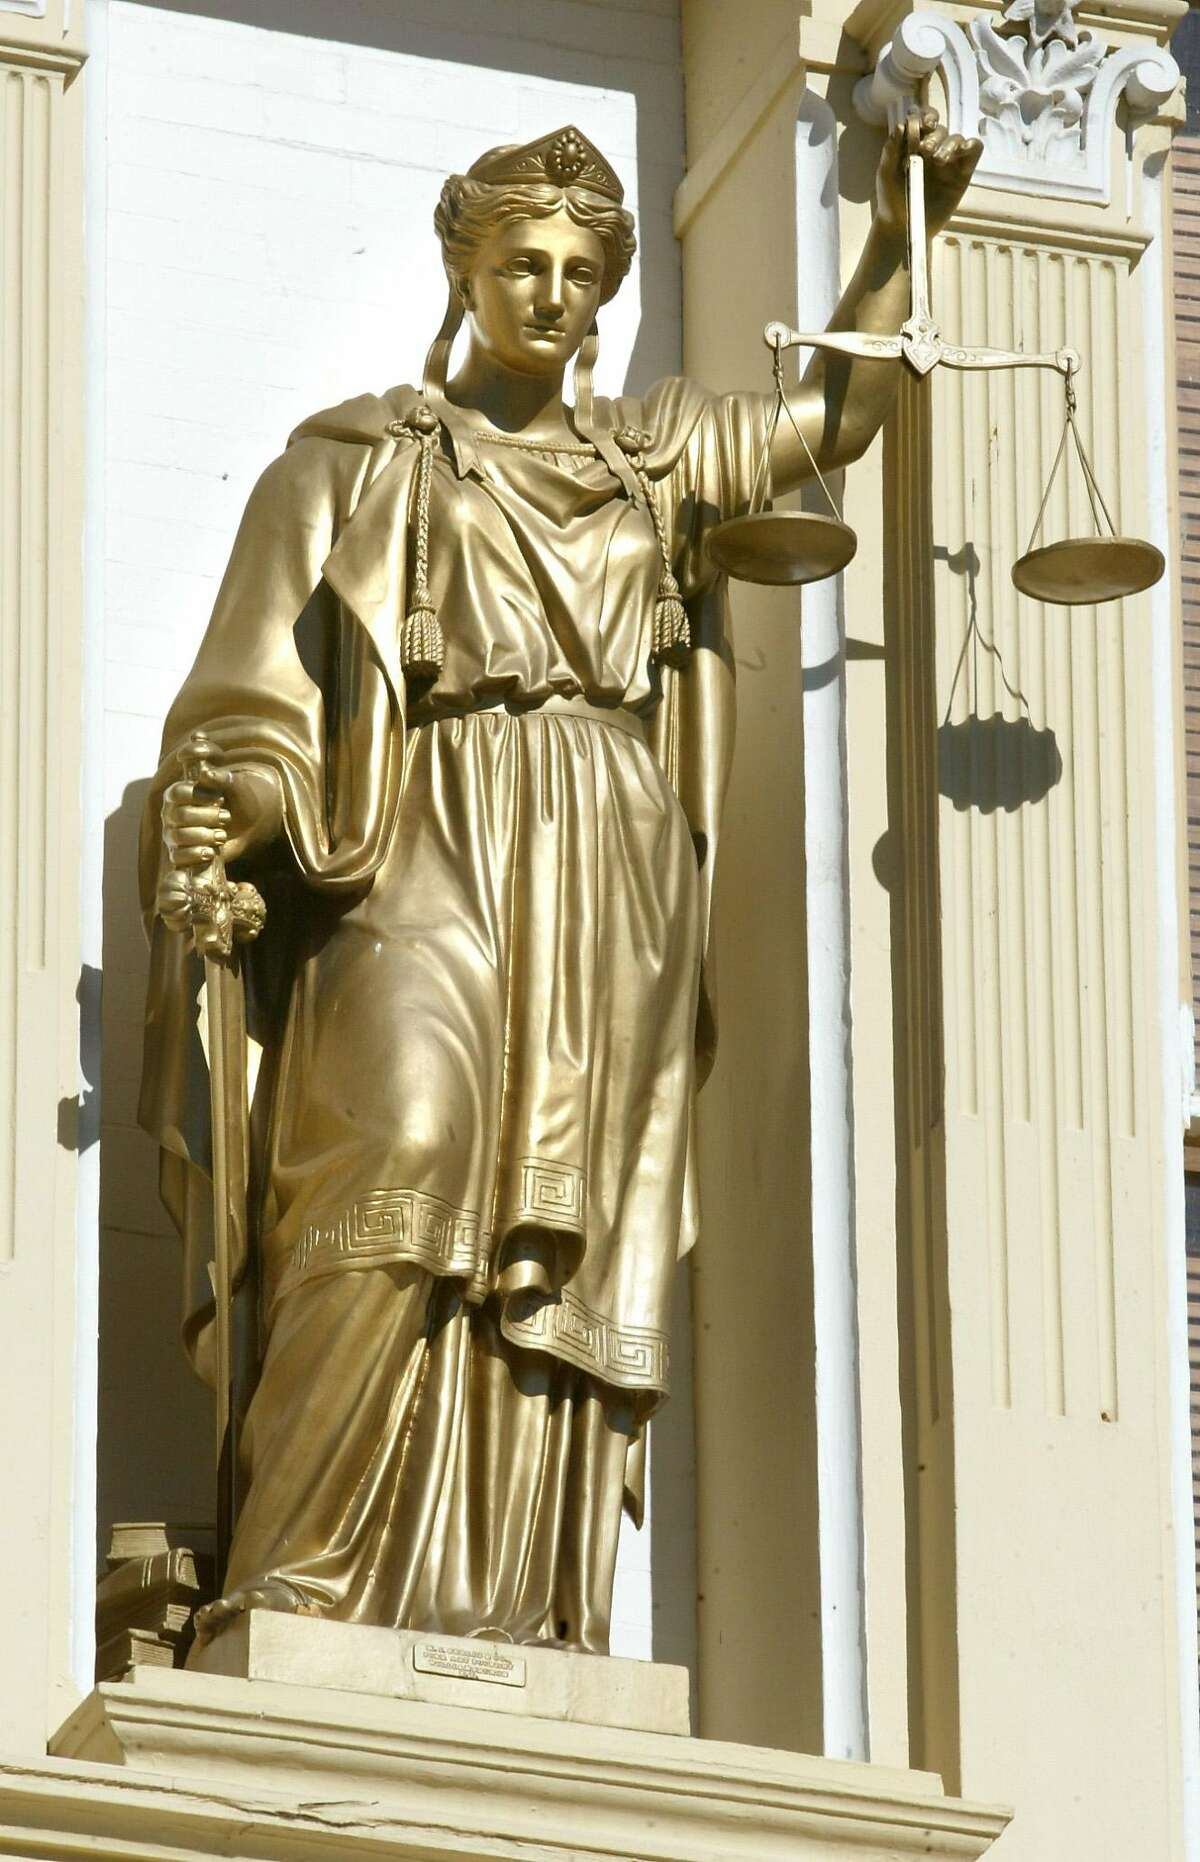 TRAVEL ** FILE **Justice is not blind in Virginia City, Nev. Bucking convention, the statue of Lady Liberty, who holds the Scales of Justice on the 1876 Washoe County Court House, wears no blindfold, seen in this June 2003 file photo. Virginia City stands today as the largest historic district in the United States. Much of the town is preserved and restored to the way it was when it was rebuilt from a consuming fire in 1875. (AP Photo/Orange County Register, Jebb Harris)